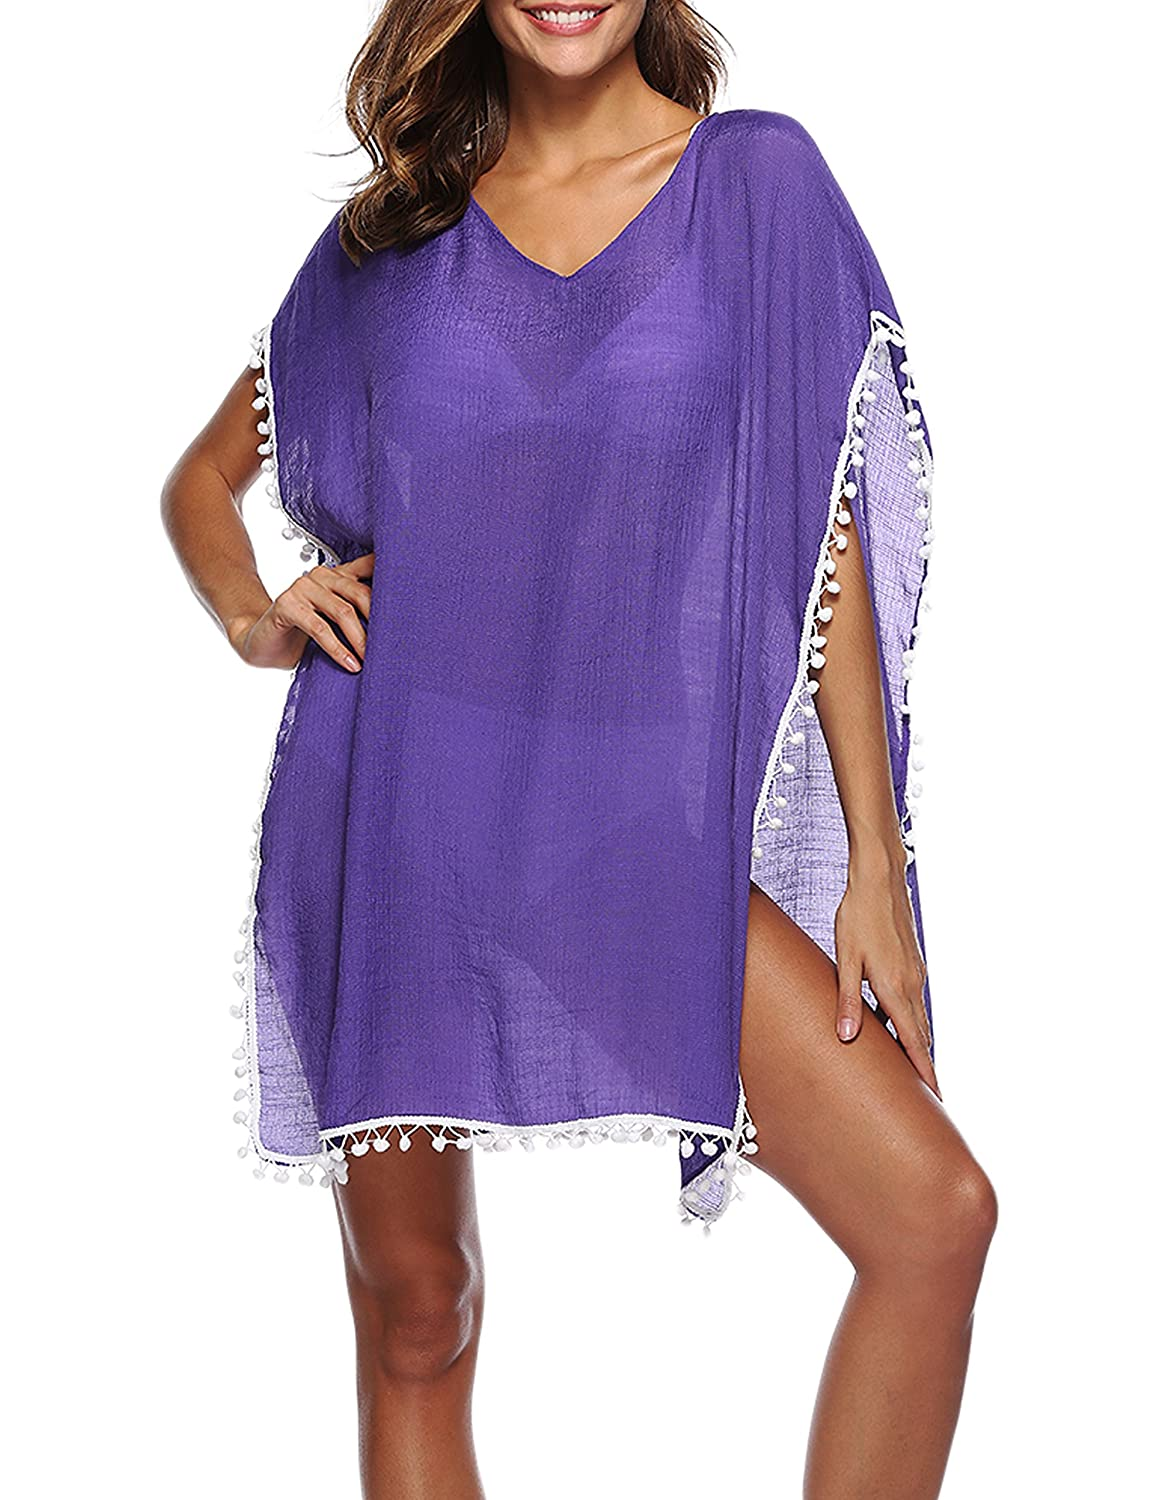 96b7976b31 FEATURE: Beach cover up, Wide sleeves, Sexy open slits up, Stitch irregular swimsuit  cover up, Wide bat sleeves, Tassel ball bathing suit cover-up, ...